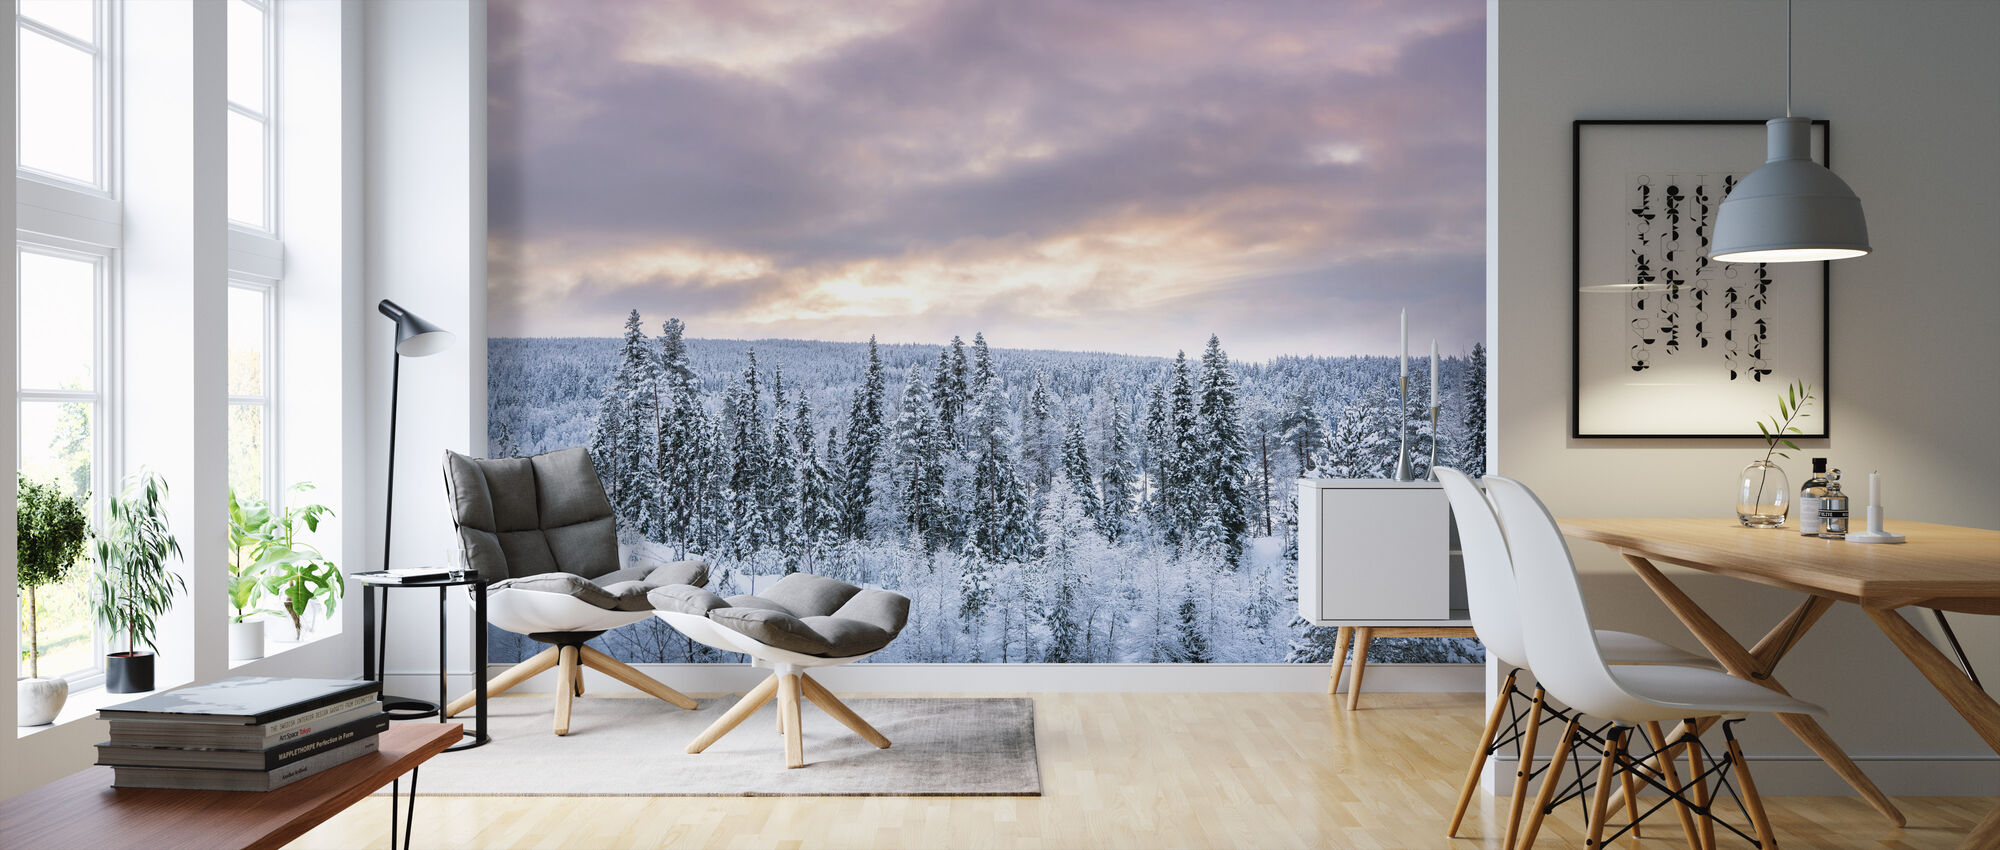 Winter is Coming - Wallpaper - Living Room